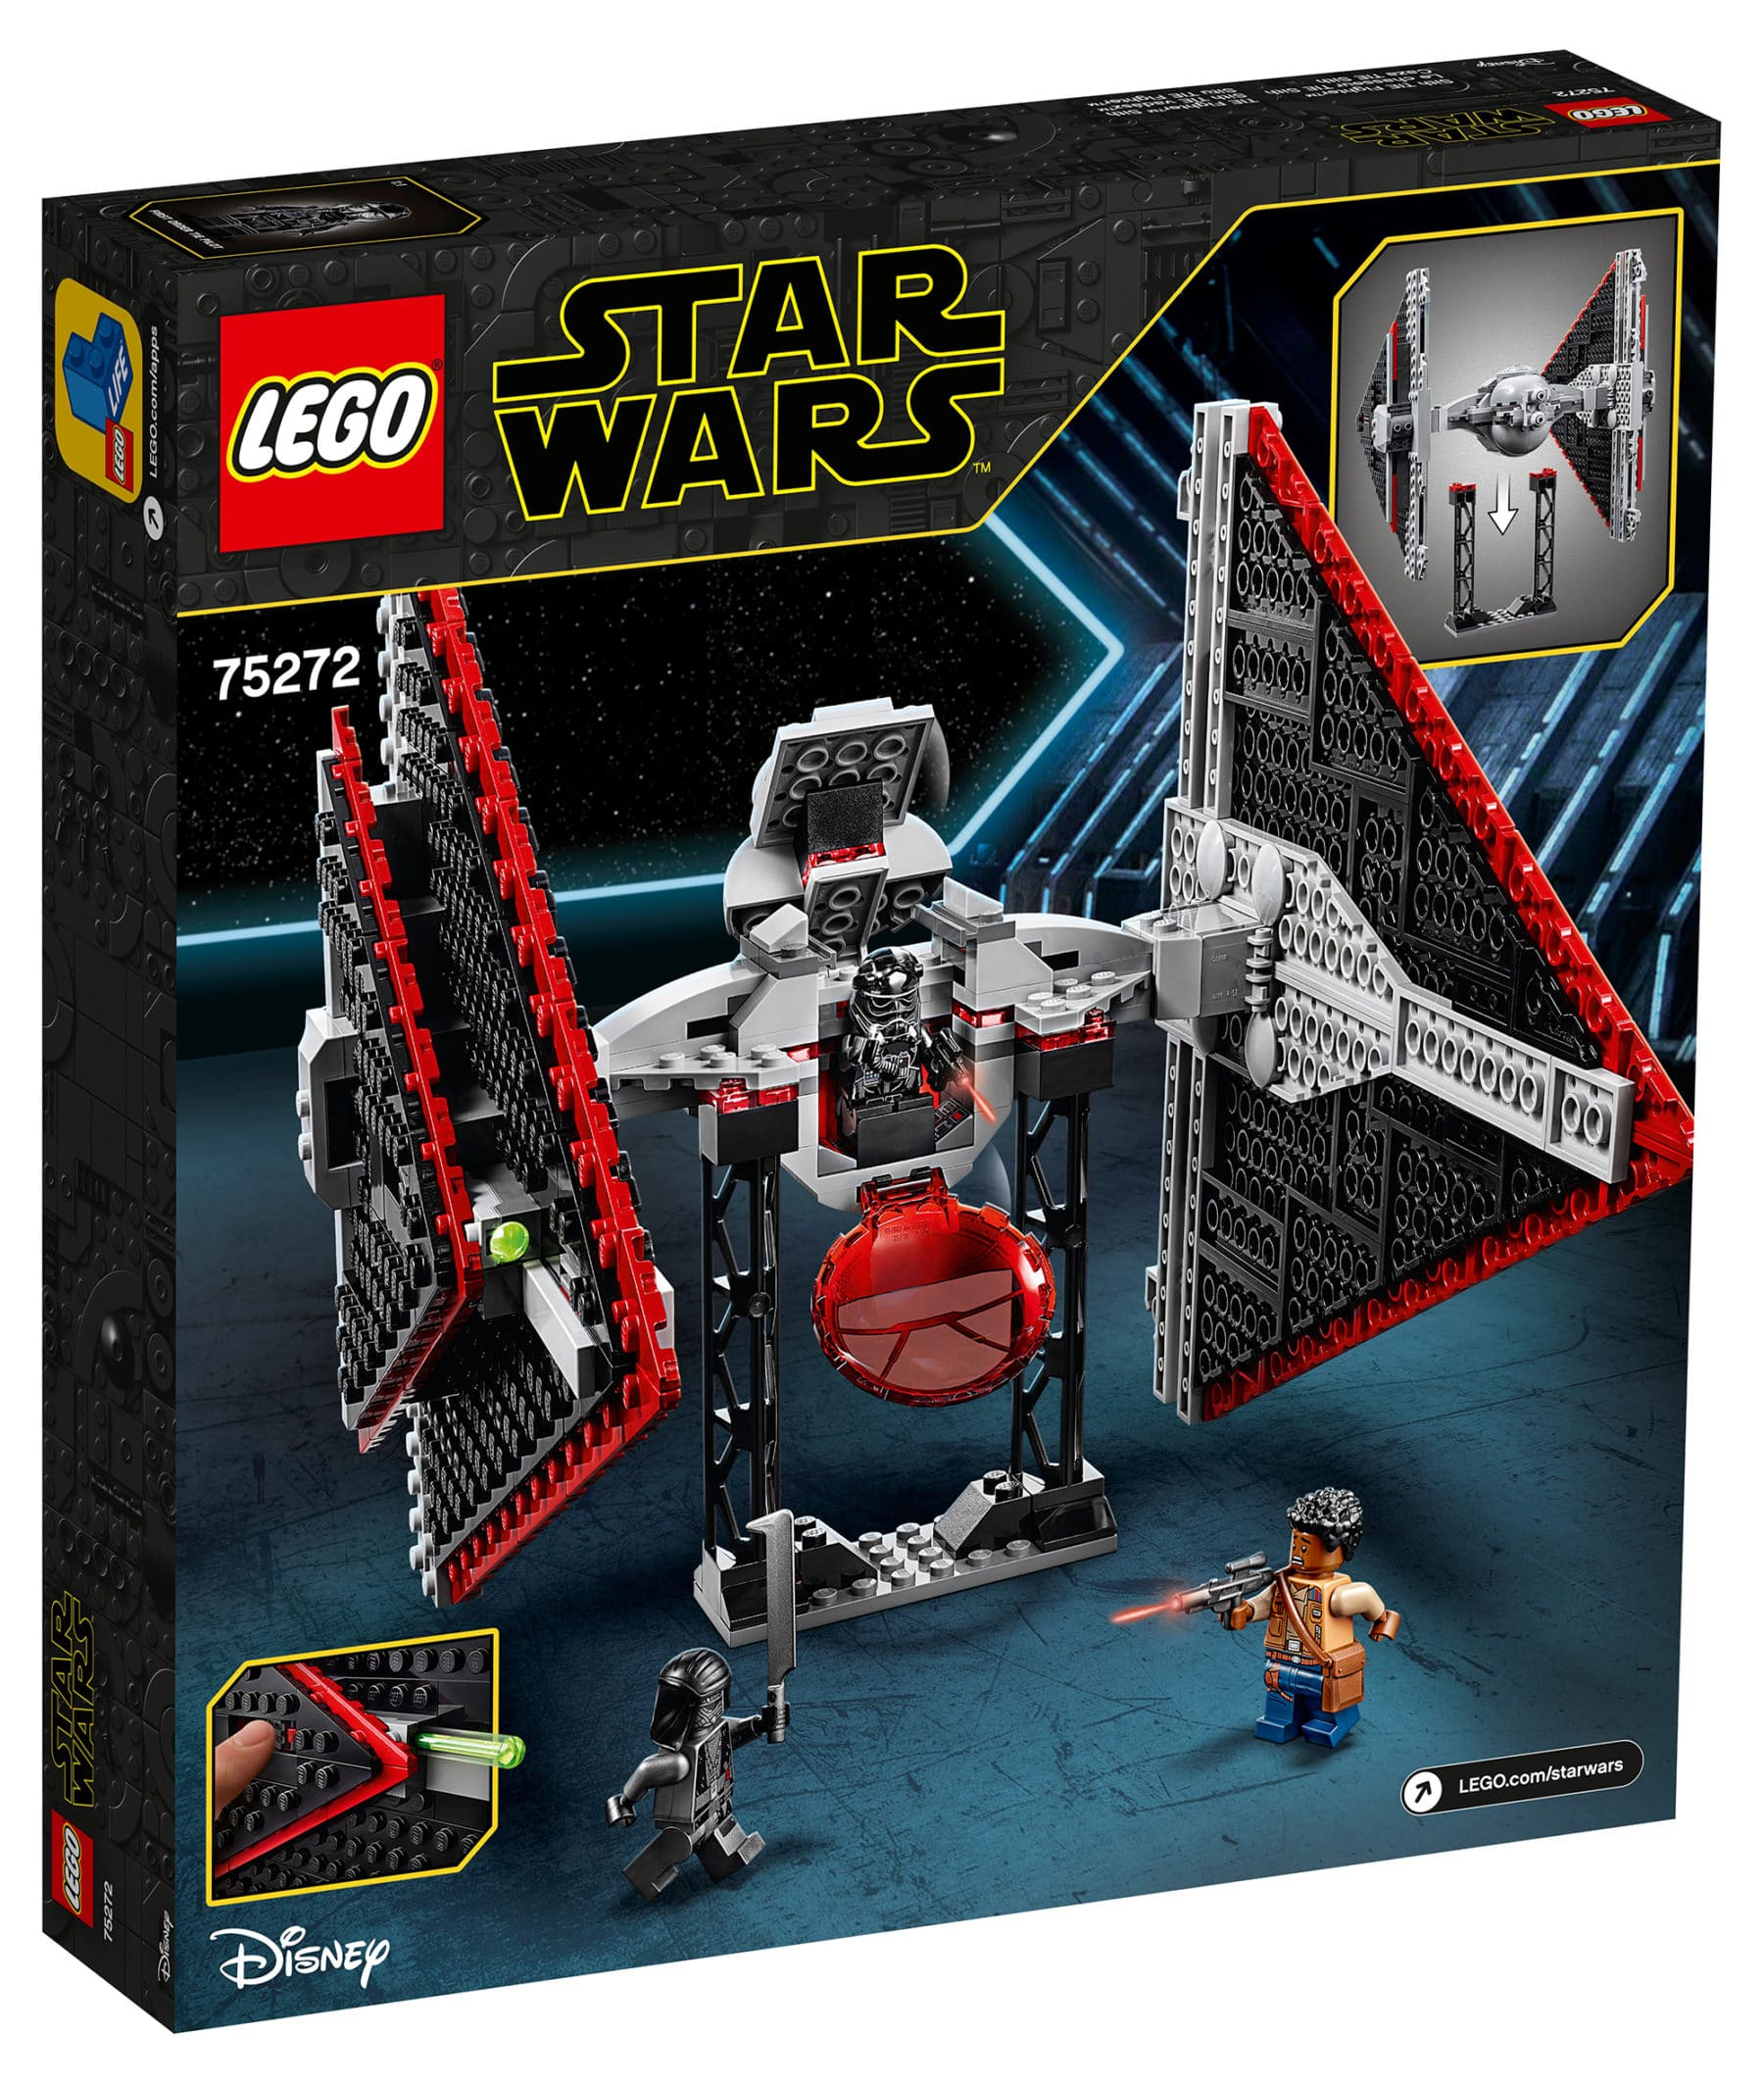 LEGO 75272 Star Wars Sith TIE Fighter Box Back